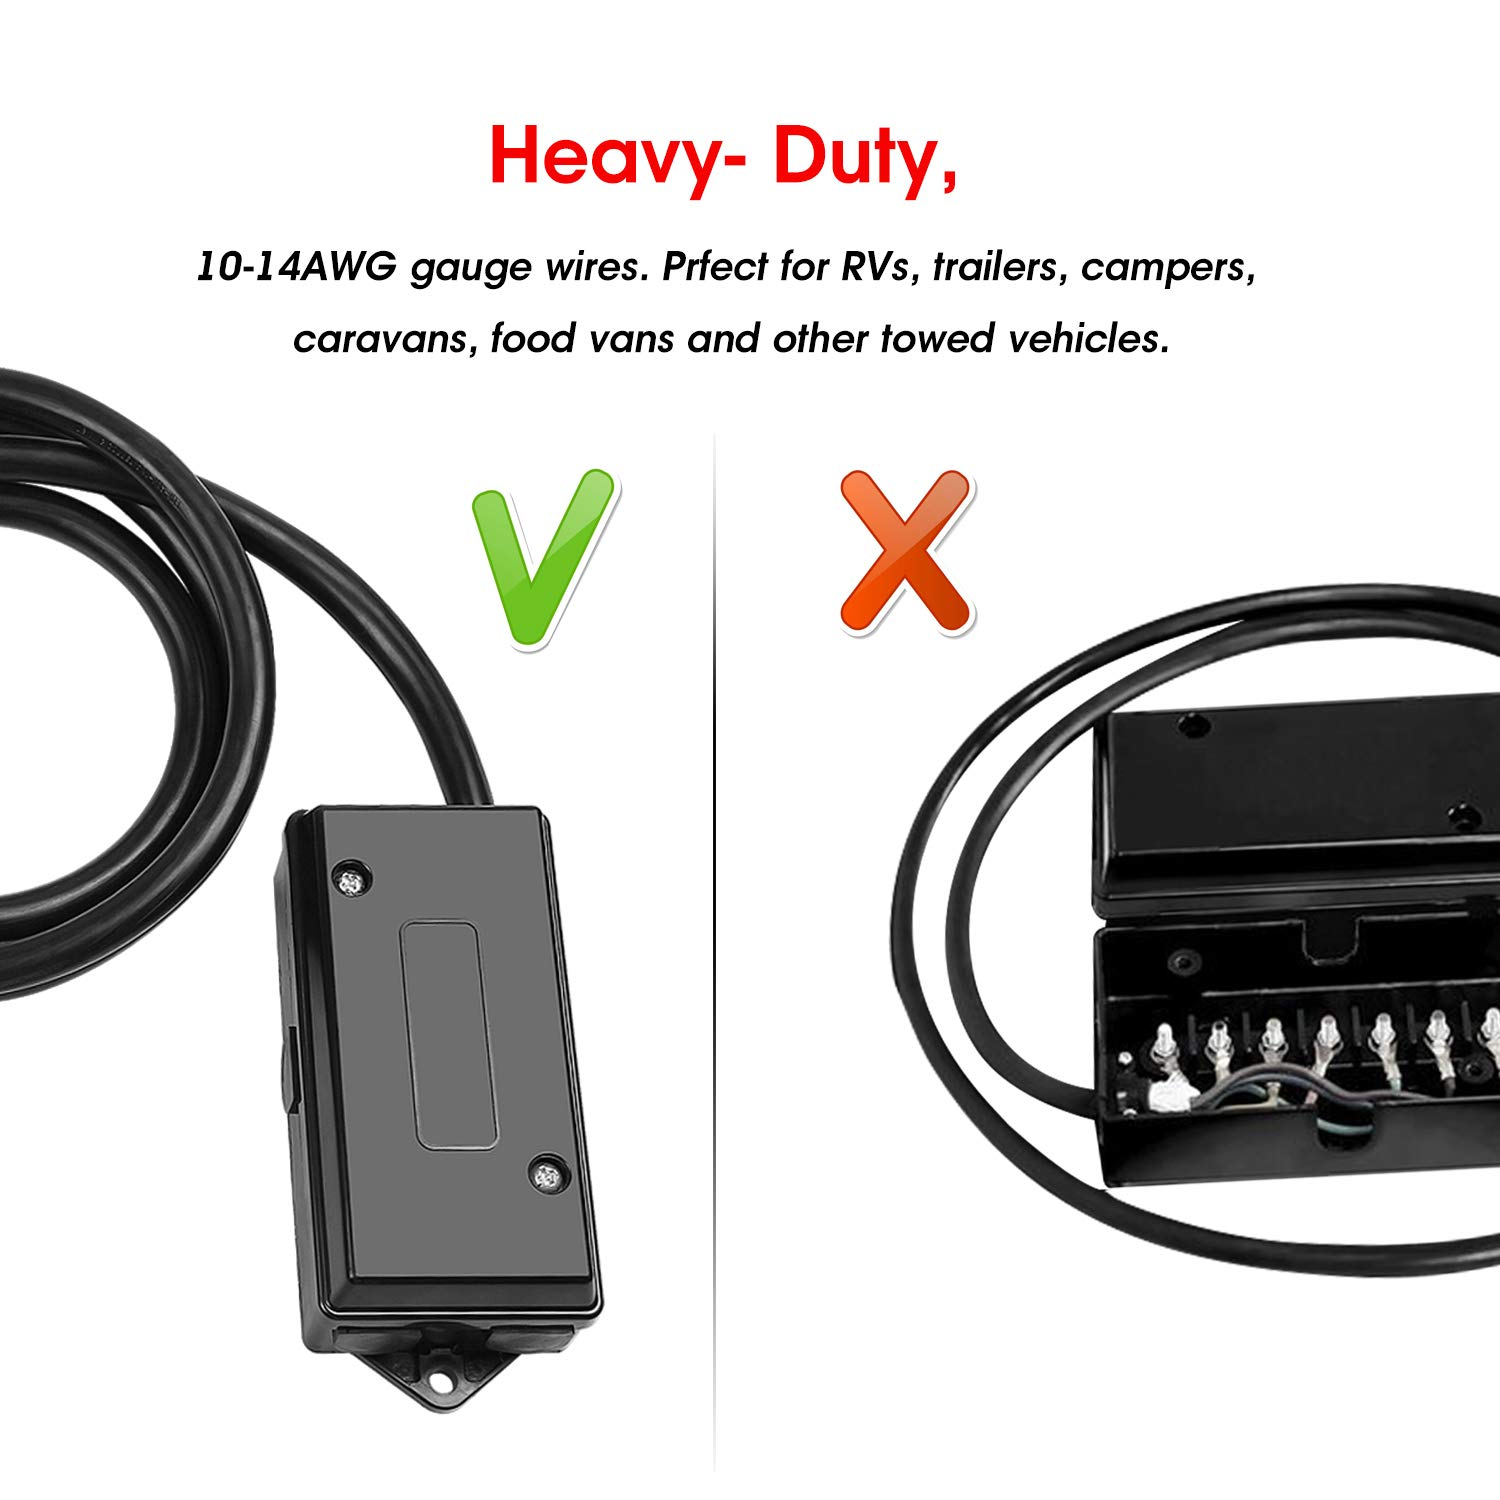 Winunite 7 Way Trailer Plug Cord With Junction Box 8 Wiring Block Feet Heavy Duty Pin Harness Connector Automotive